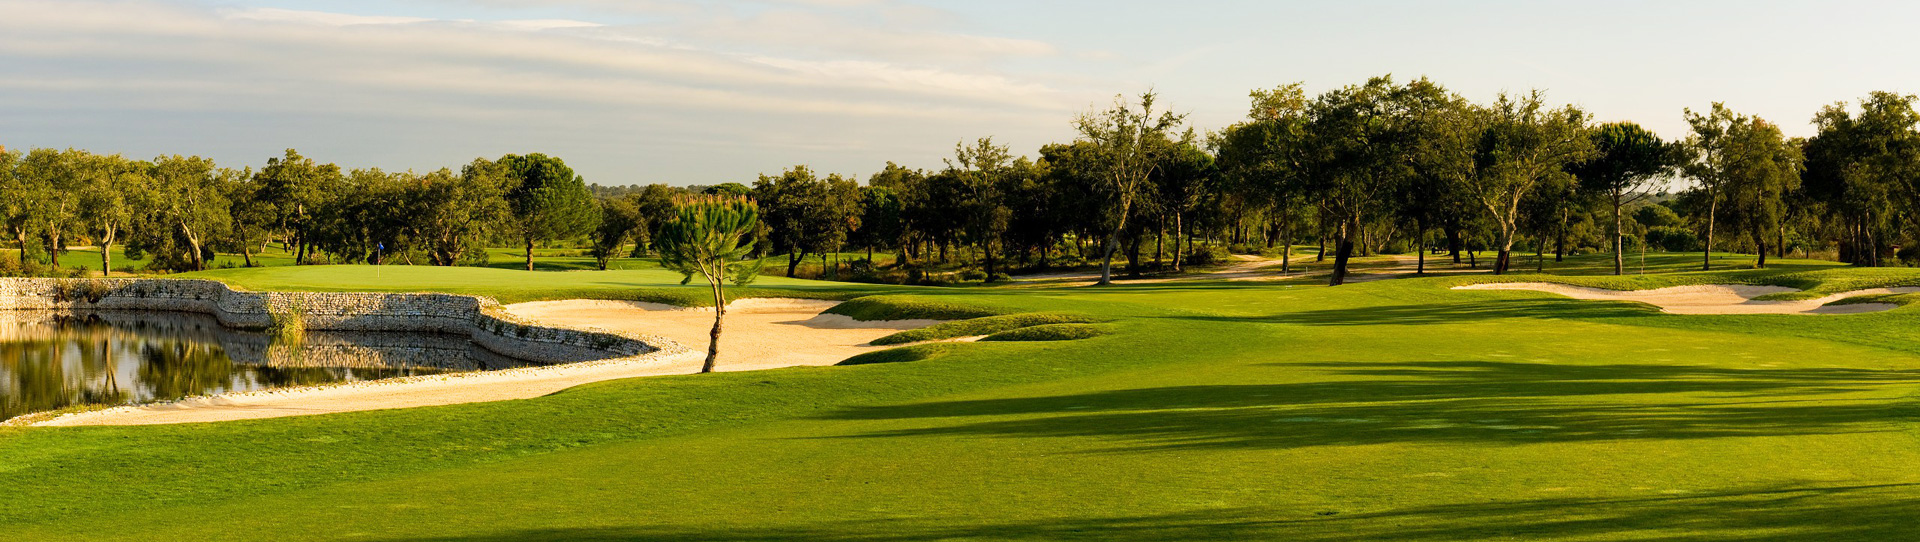 Ribagolfe Lakes Golf Course (ex Riba I) - Photo 2